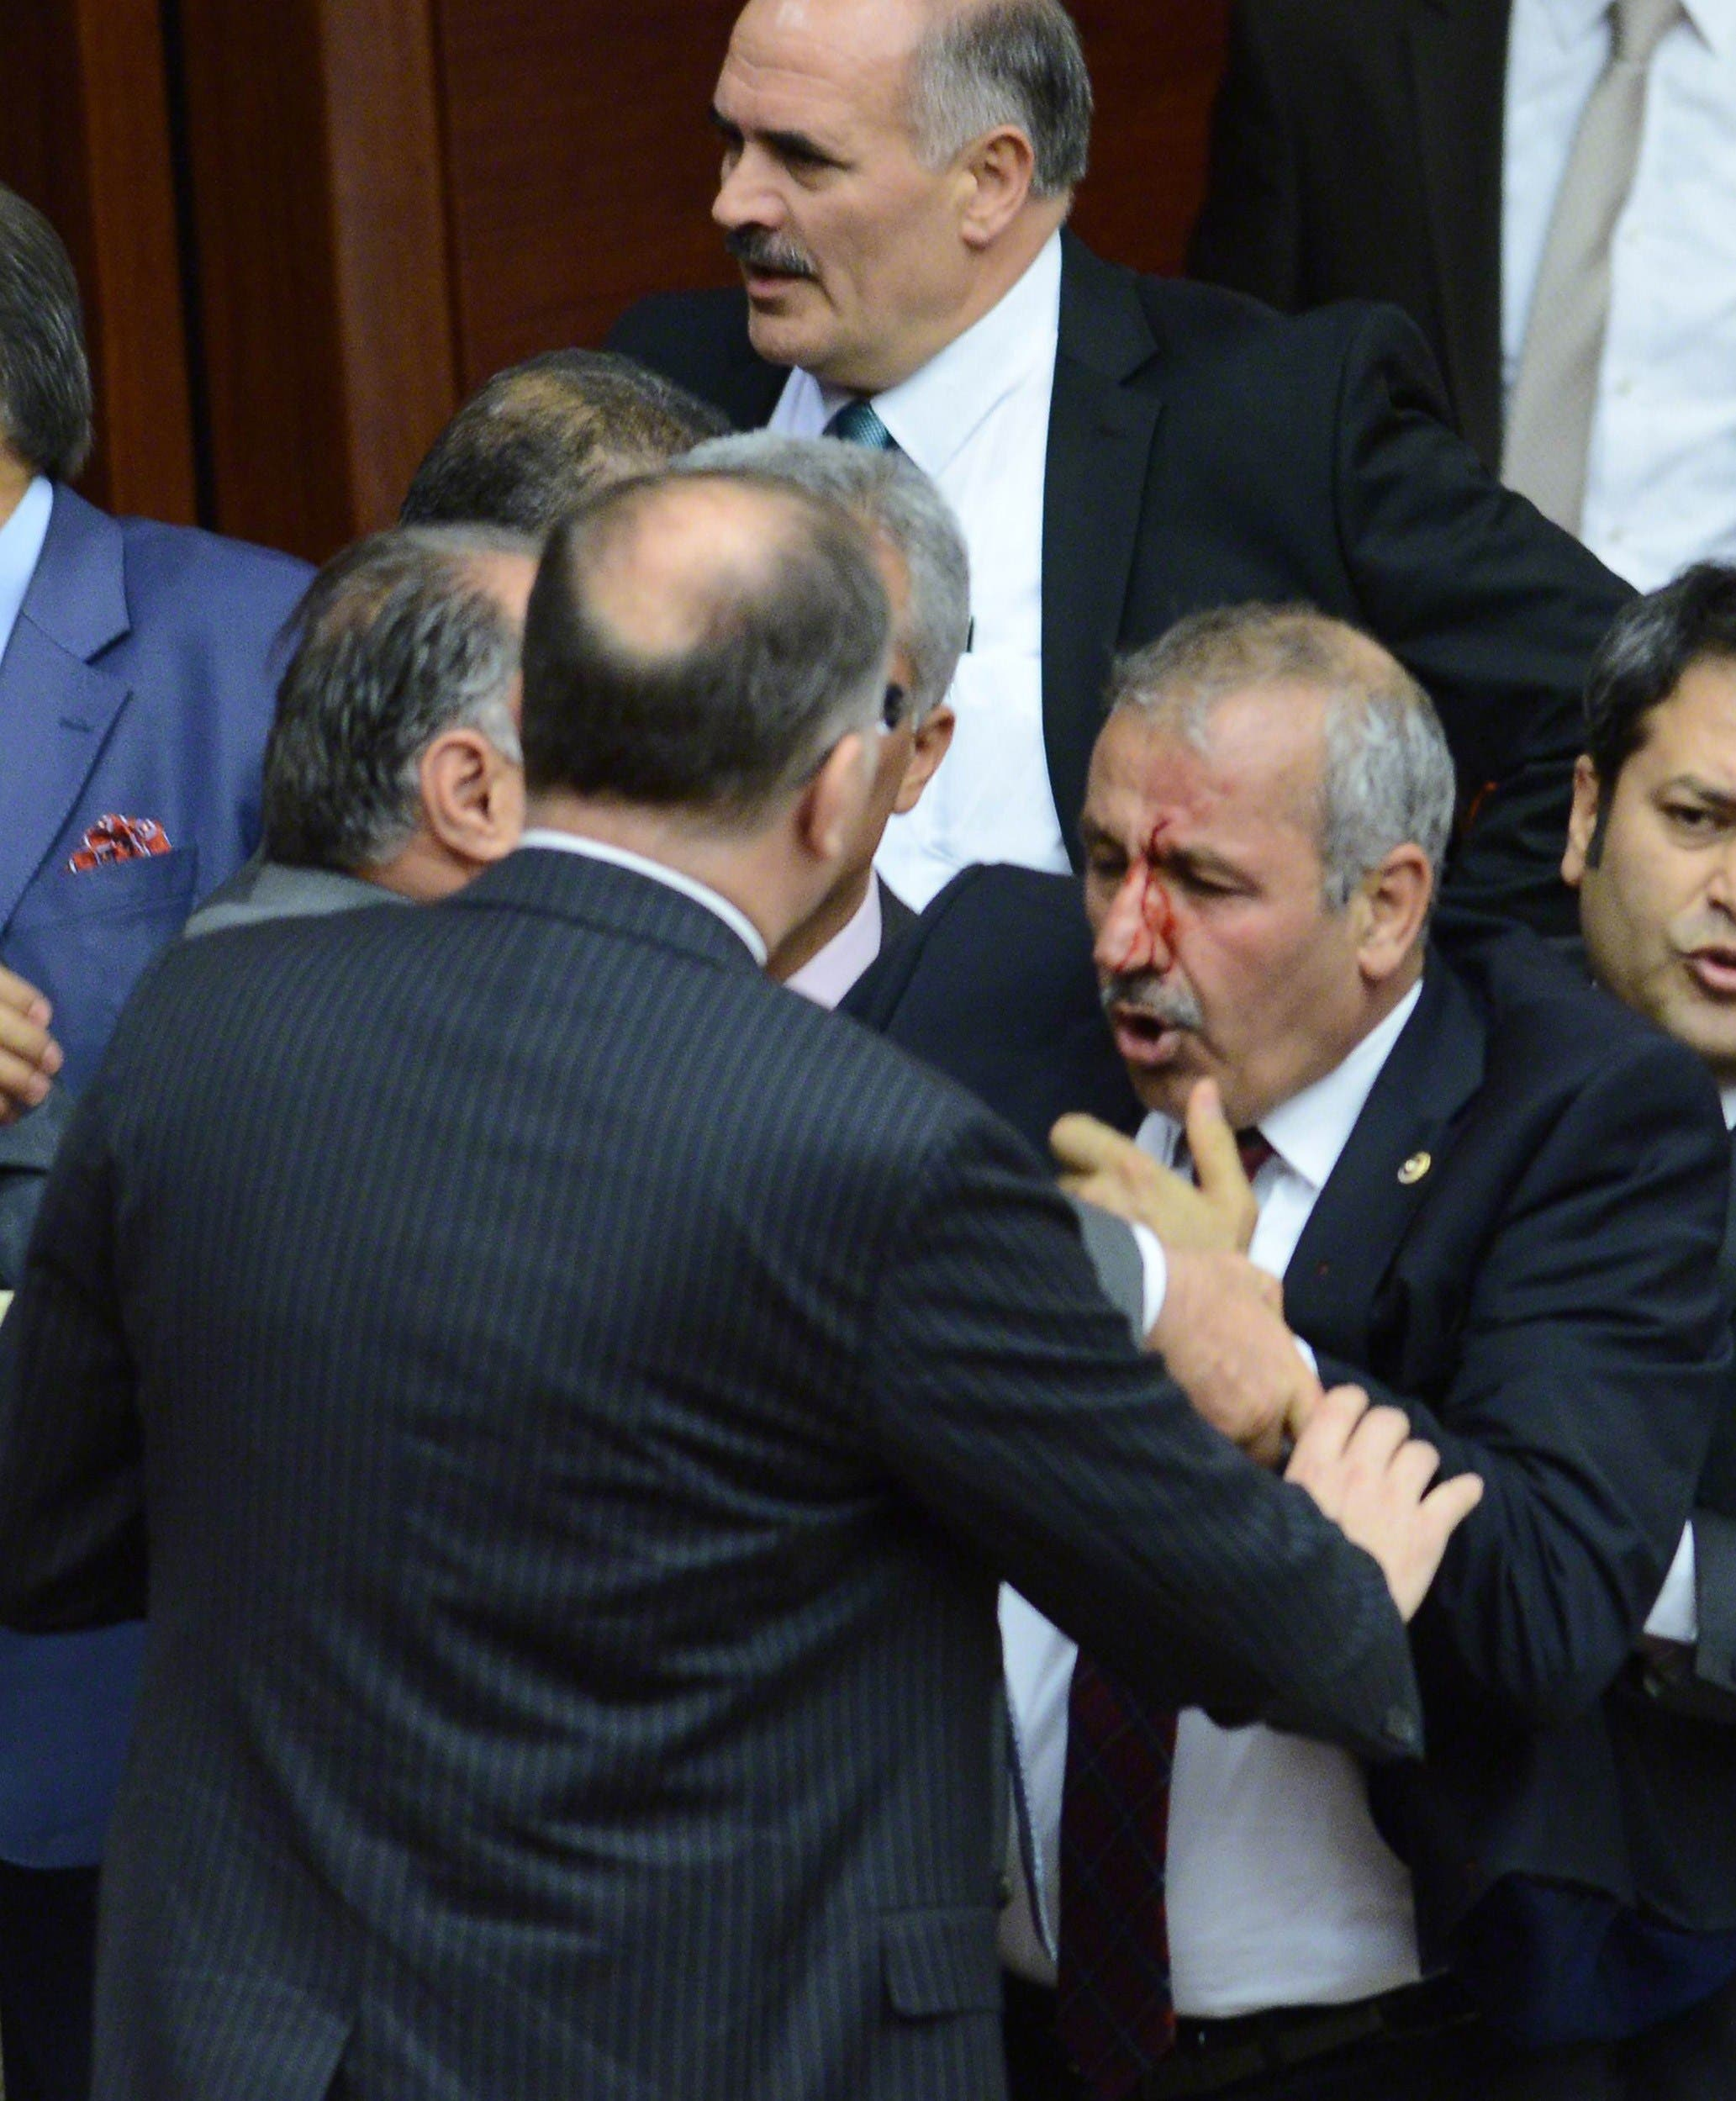 Opposition party MHP's deputy Ali Uzunirmak (R) reacts during a fight with a deputy of the AKP ruling party at the parliament in Ankara, on August 4, 2014. (AFP)